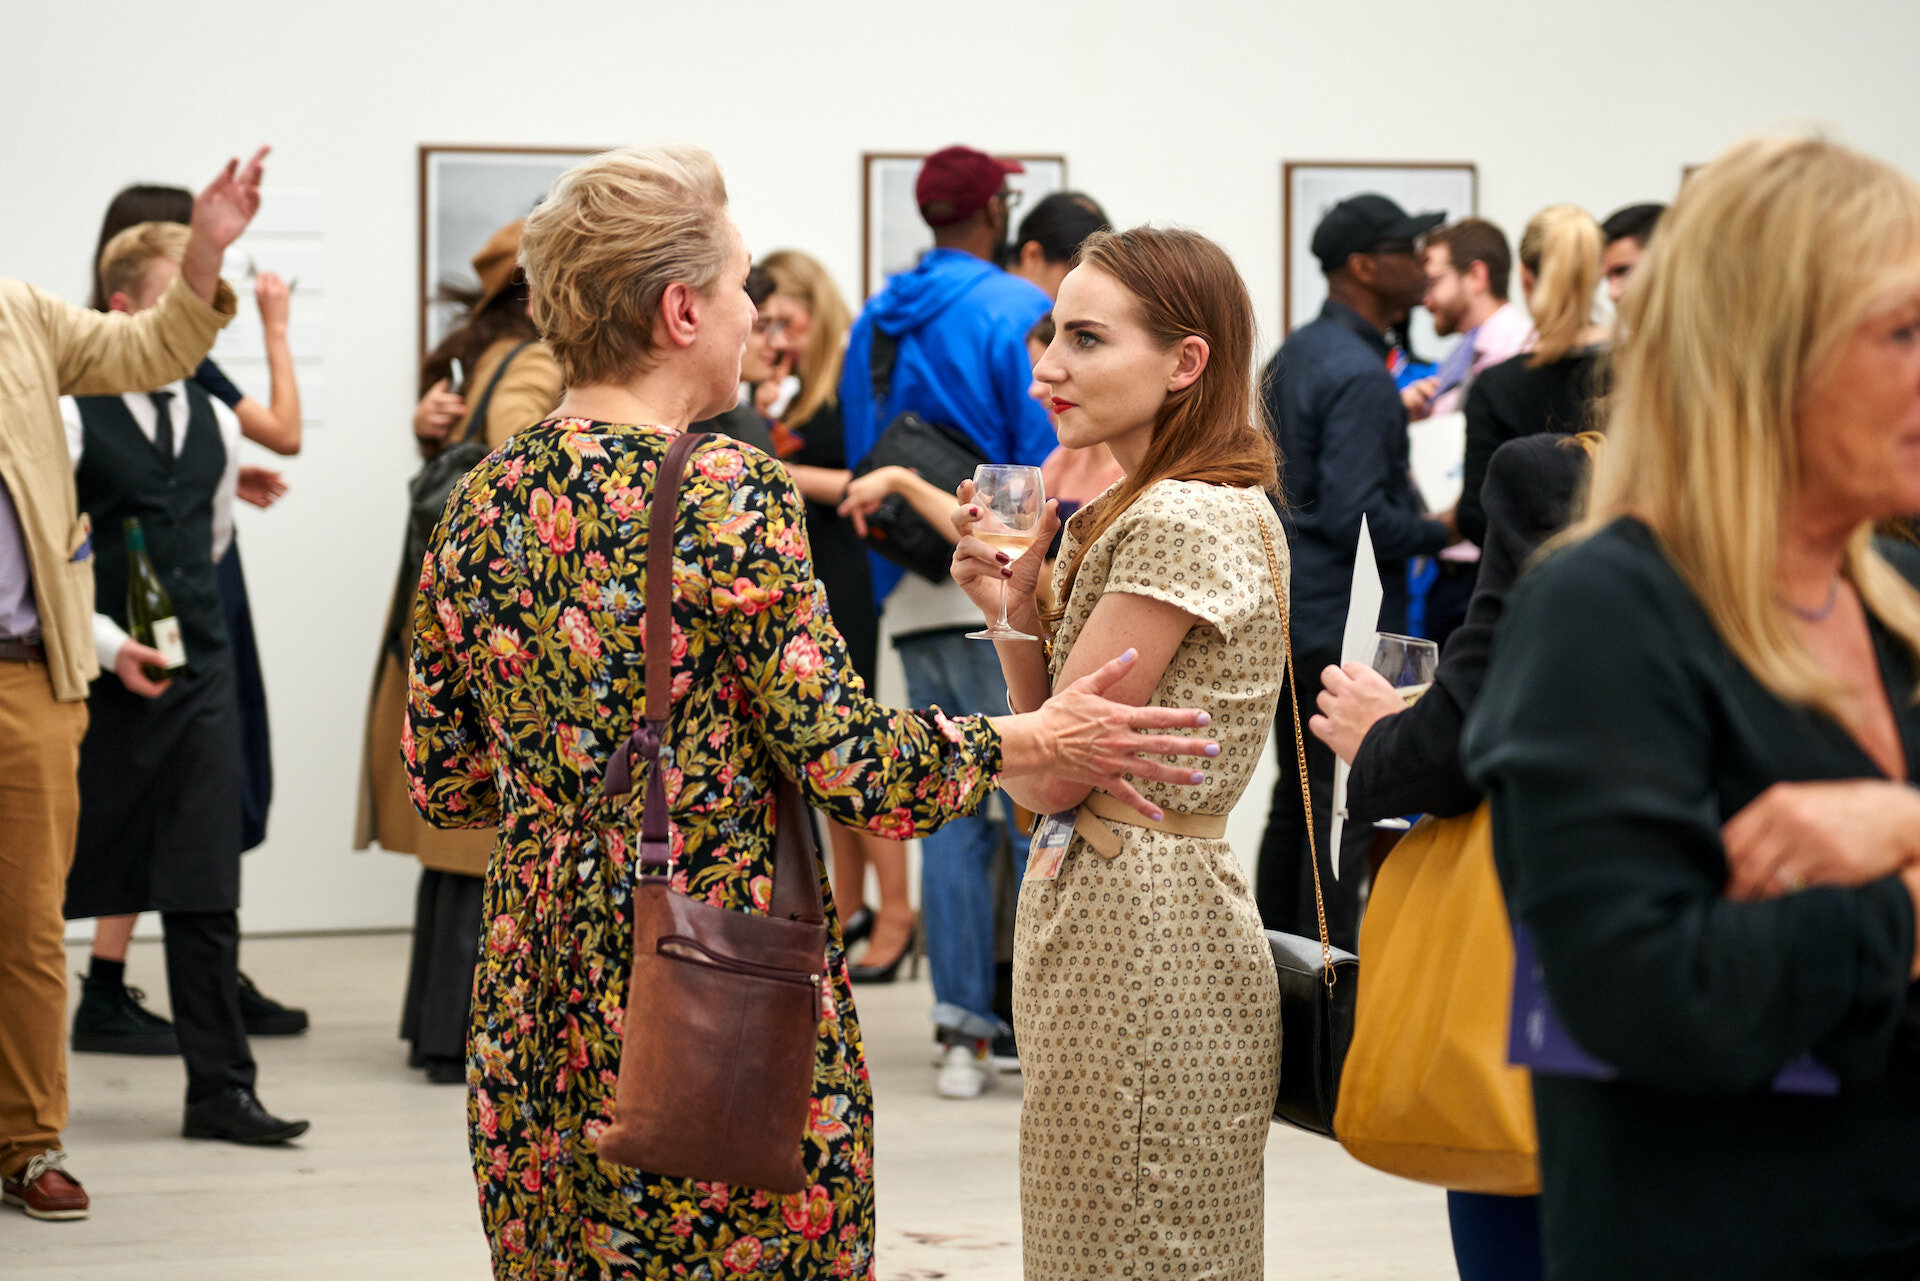 07.10.19 - UK Young Artist of the Year Award-149.jpg